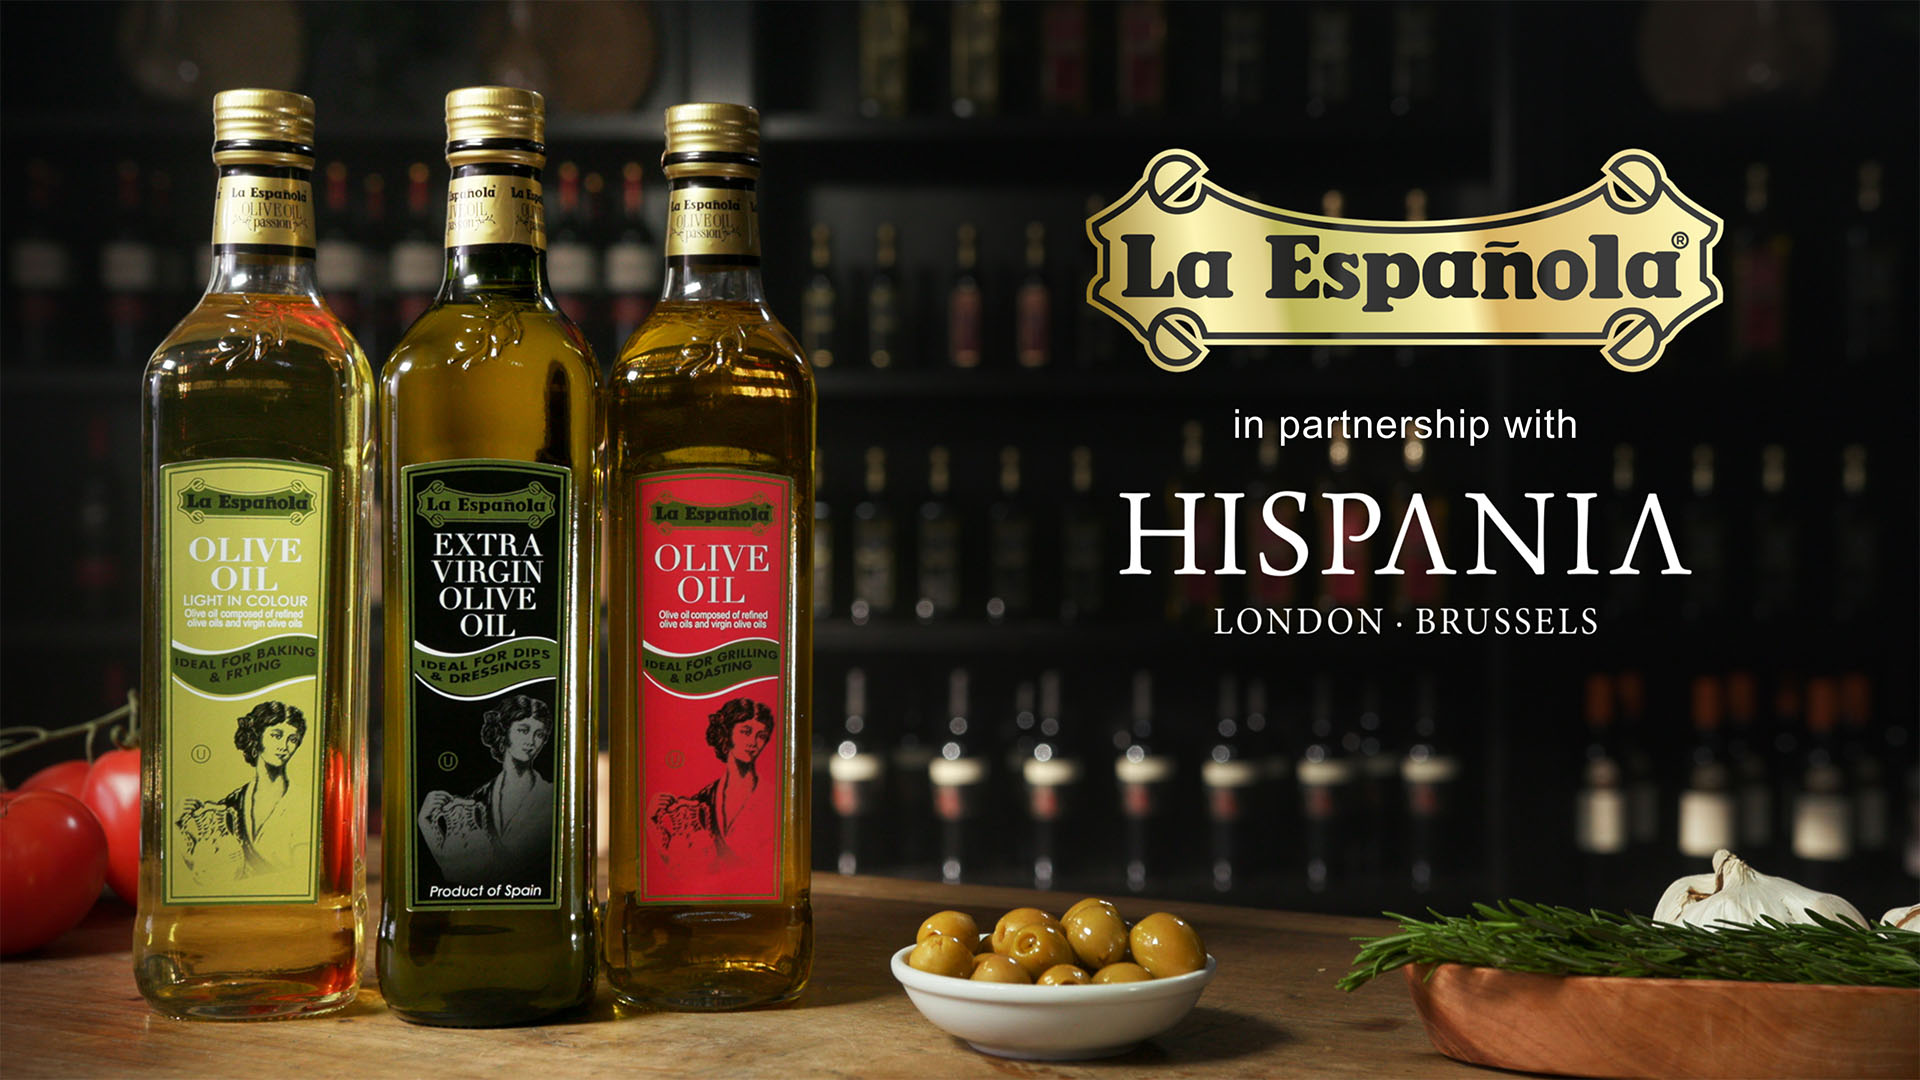 La Espanola Olive Oil Hispania London